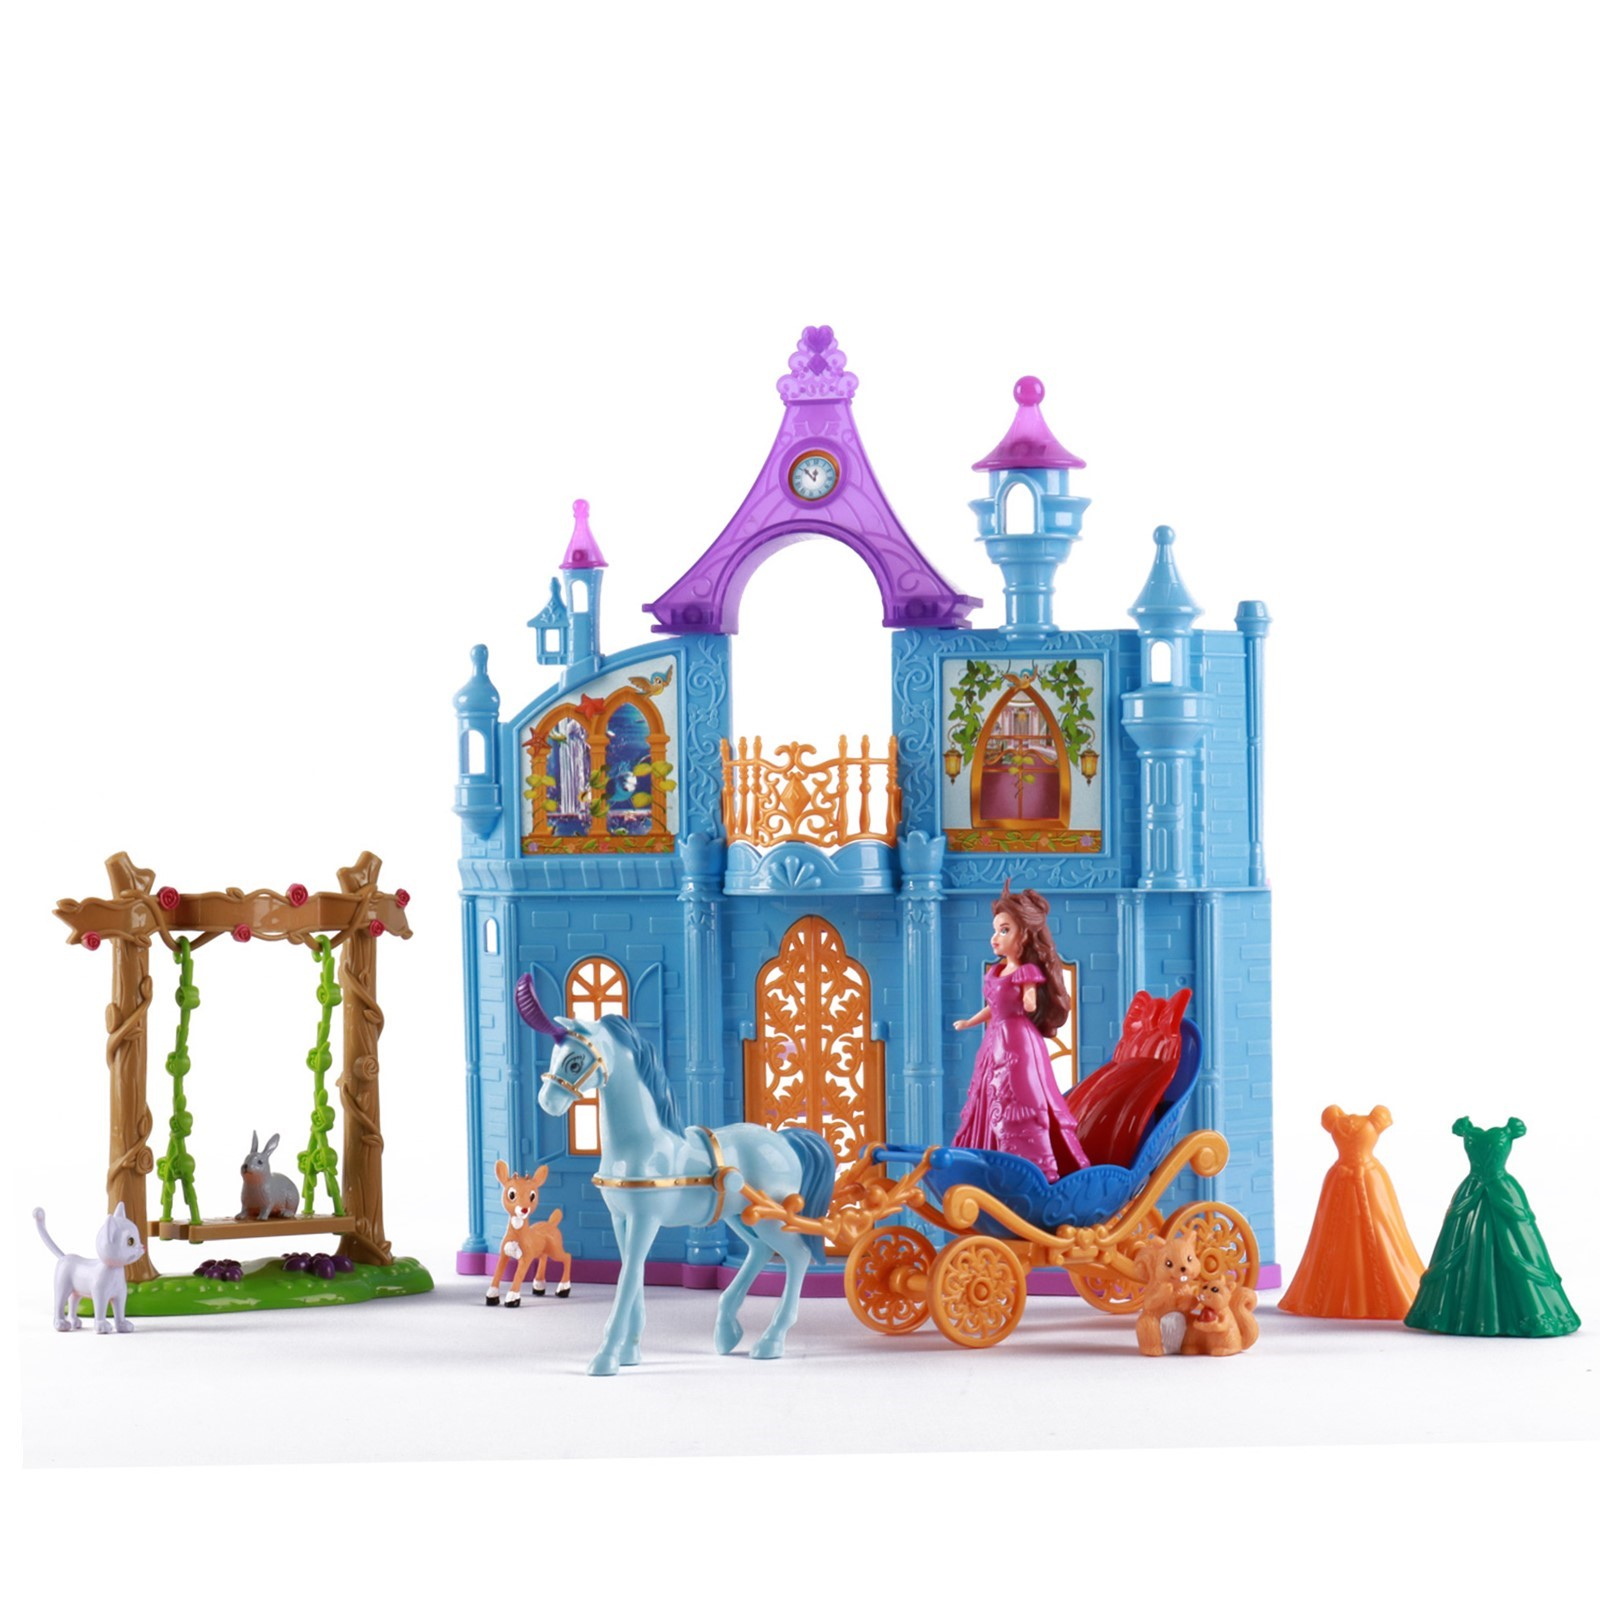 Princess Castle Deluxe Playset With Animal Friends Enchanted Swing Magical Horse And Carriage 3 Wardrobe Options Children's Pretend Play Perfect Early Learning Educational Preschool Girls Toys